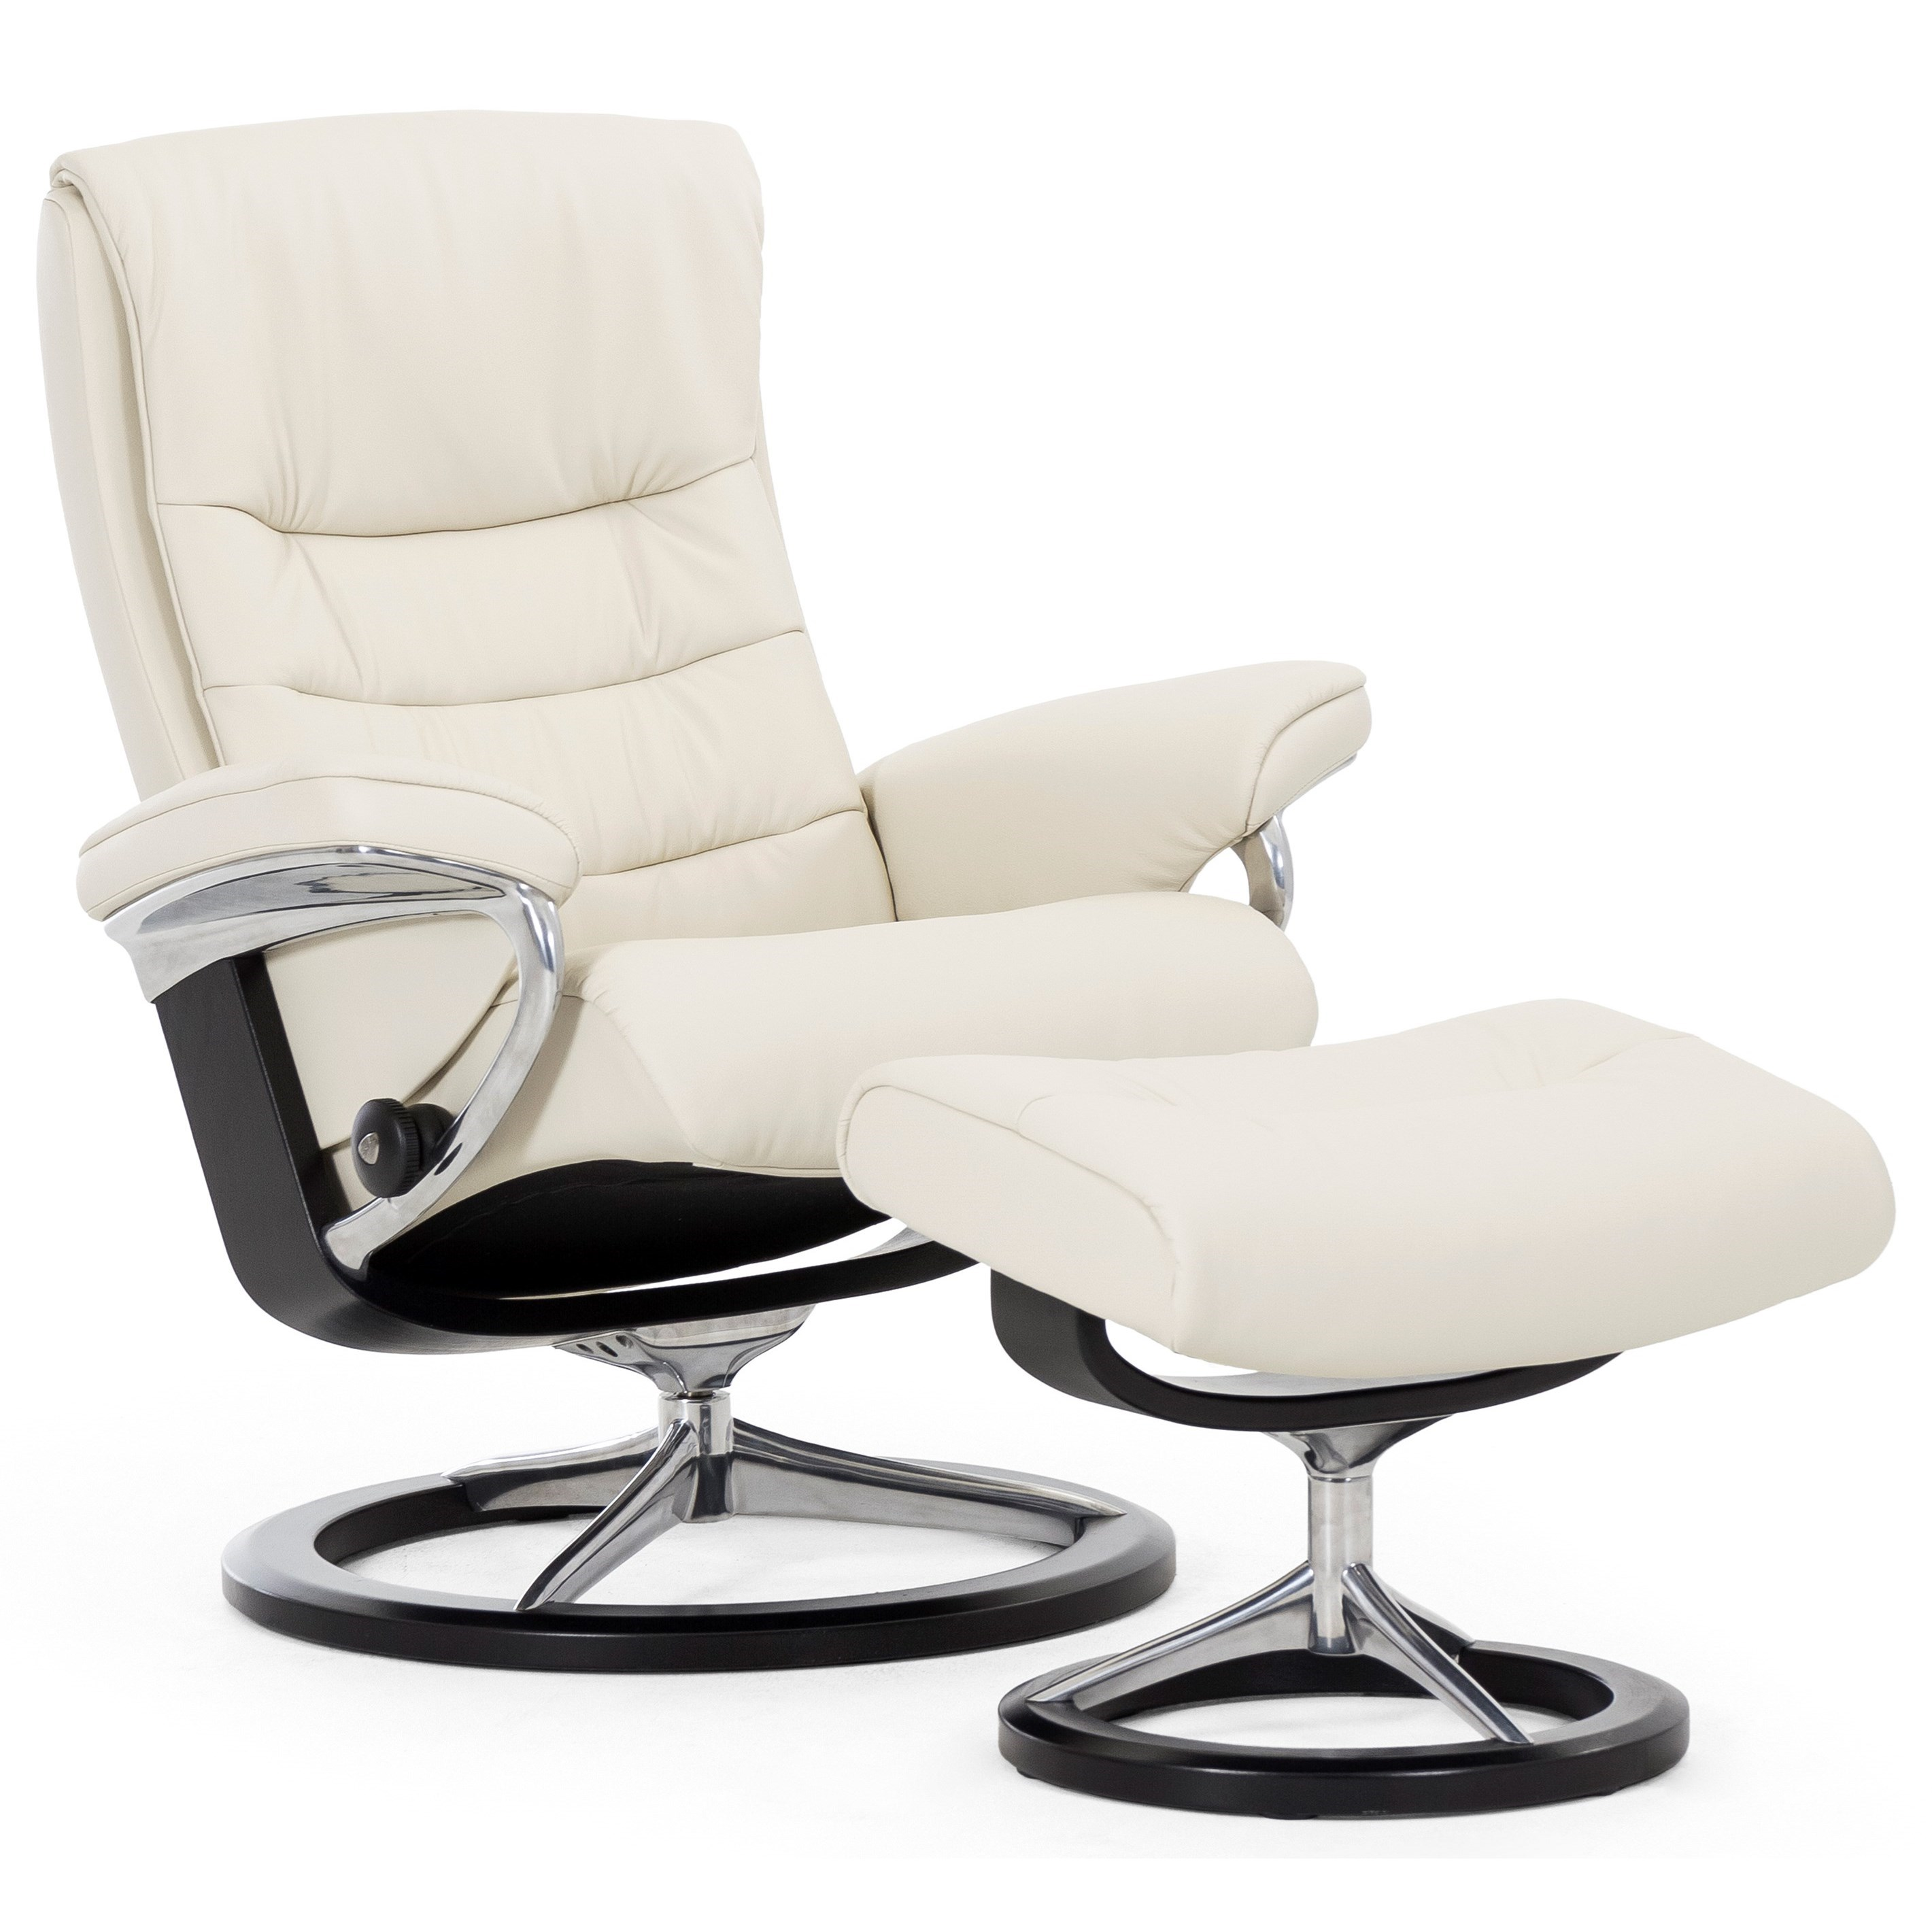 Stressless Nordic Large Chair U0026 Ottoman With Signature Base   Item Number:  1282310 Paloma